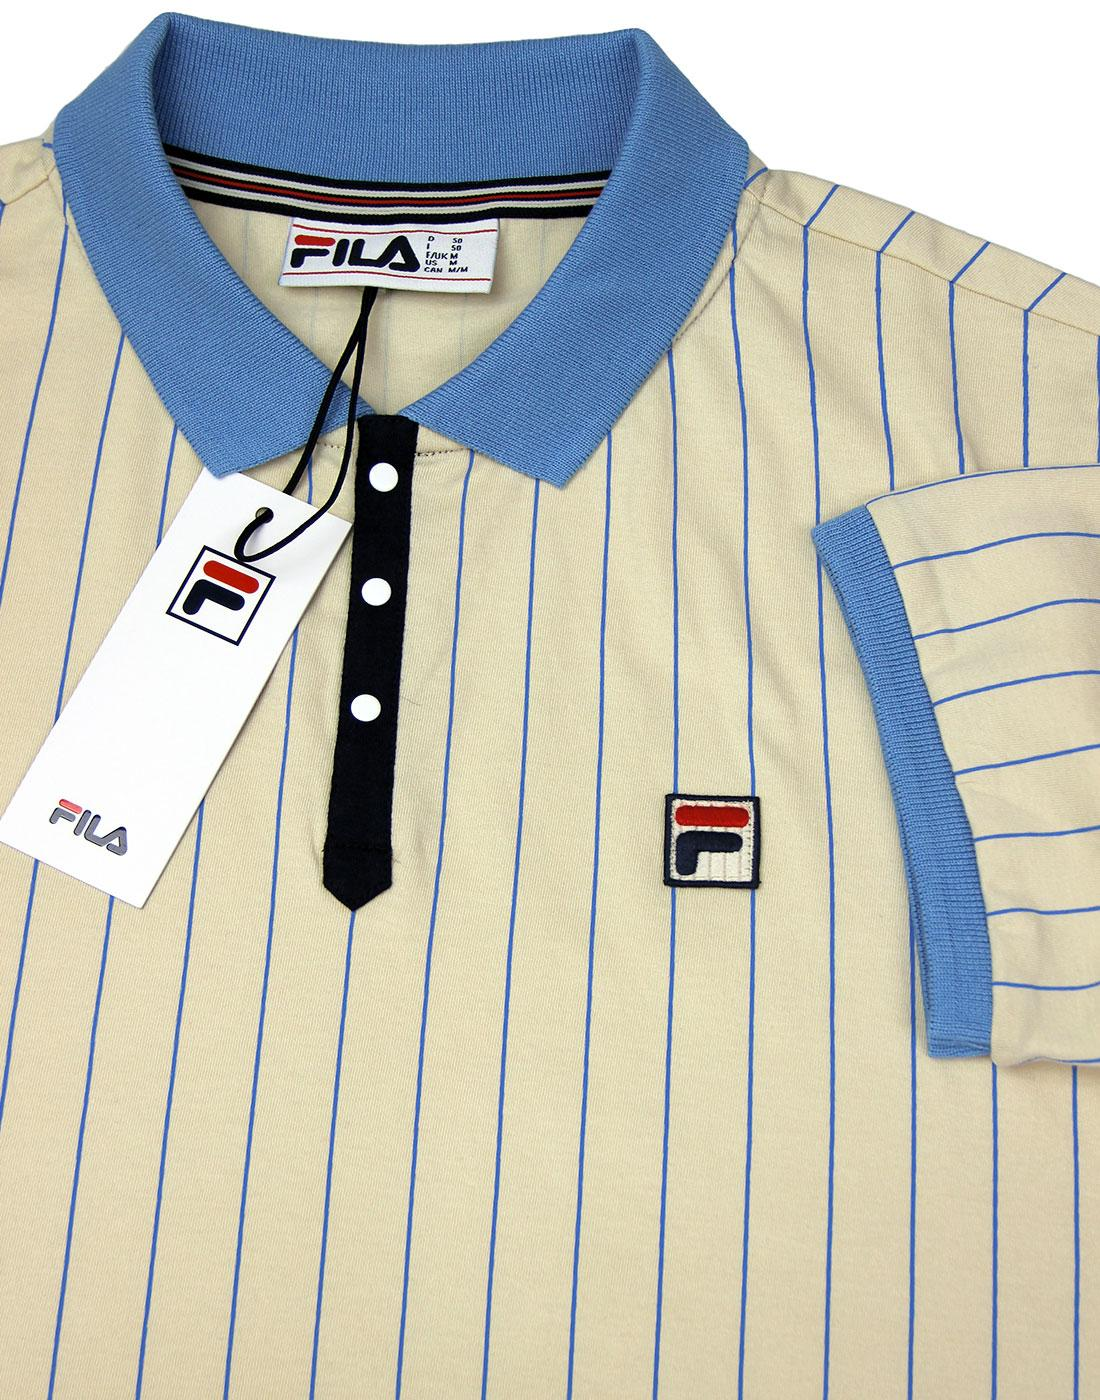 19c1fdfa8e3bc Fila Vintage Bb1 Polo Shirt – EDGE Engineering and Consulting Limited